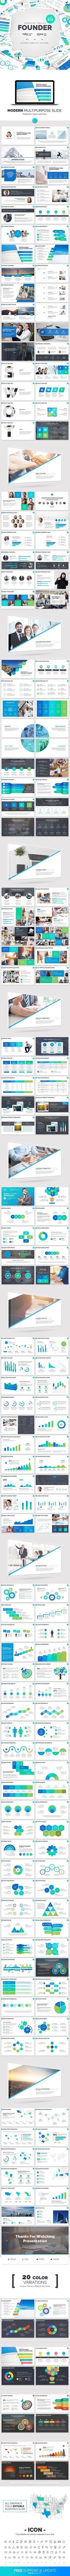 Founder Powerpoint Template - Business #PowerPoint #Templates Download here: https://graphicriver.net/item/founder-powerpoint-template/19513740?ref=alena994